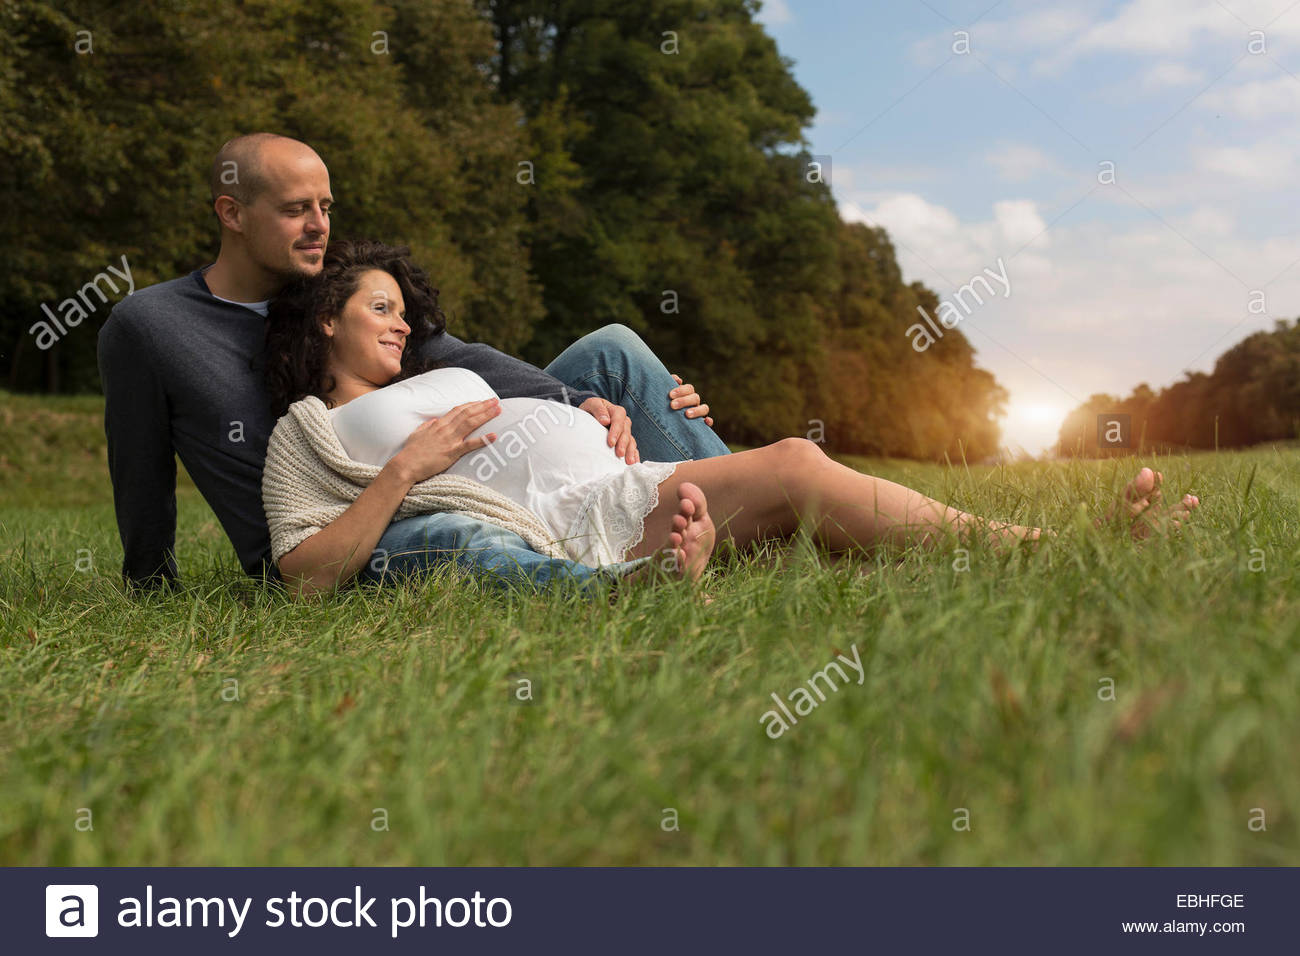 Pregnant couple sitting on grass in park Photo Stock